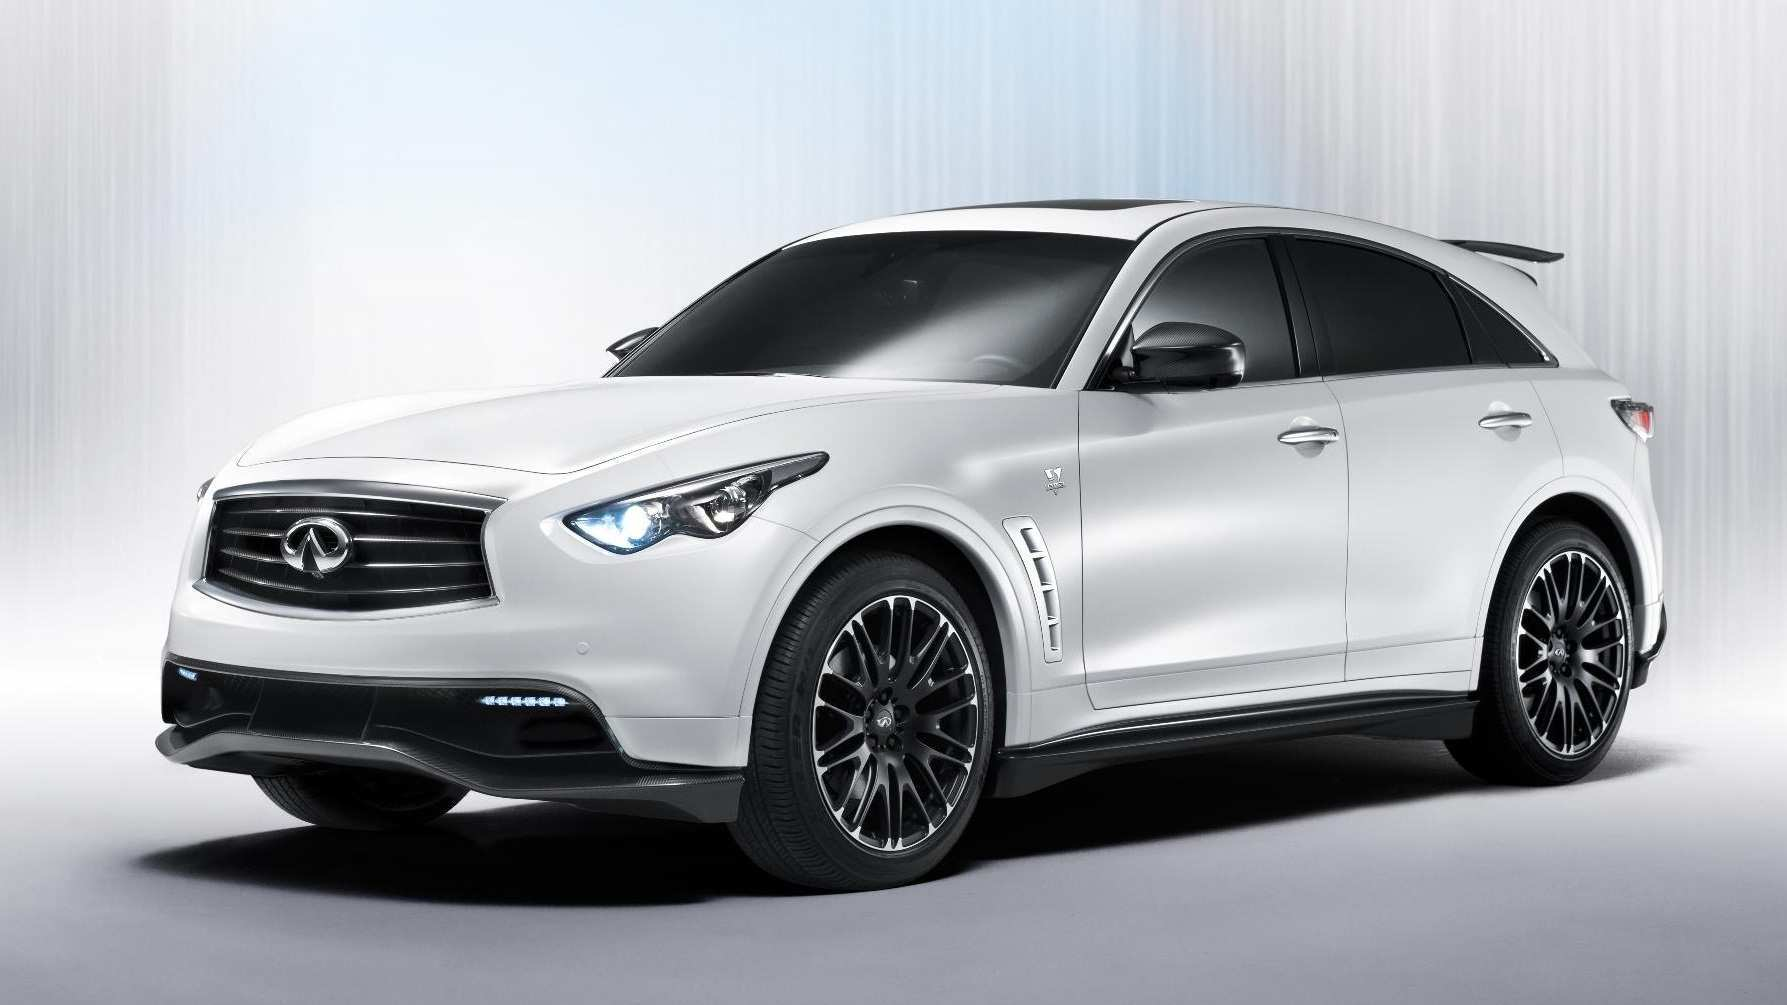 32 Concept of 2020 Infiniti Fx50 Rumors by 2020 Infiniti Fx50